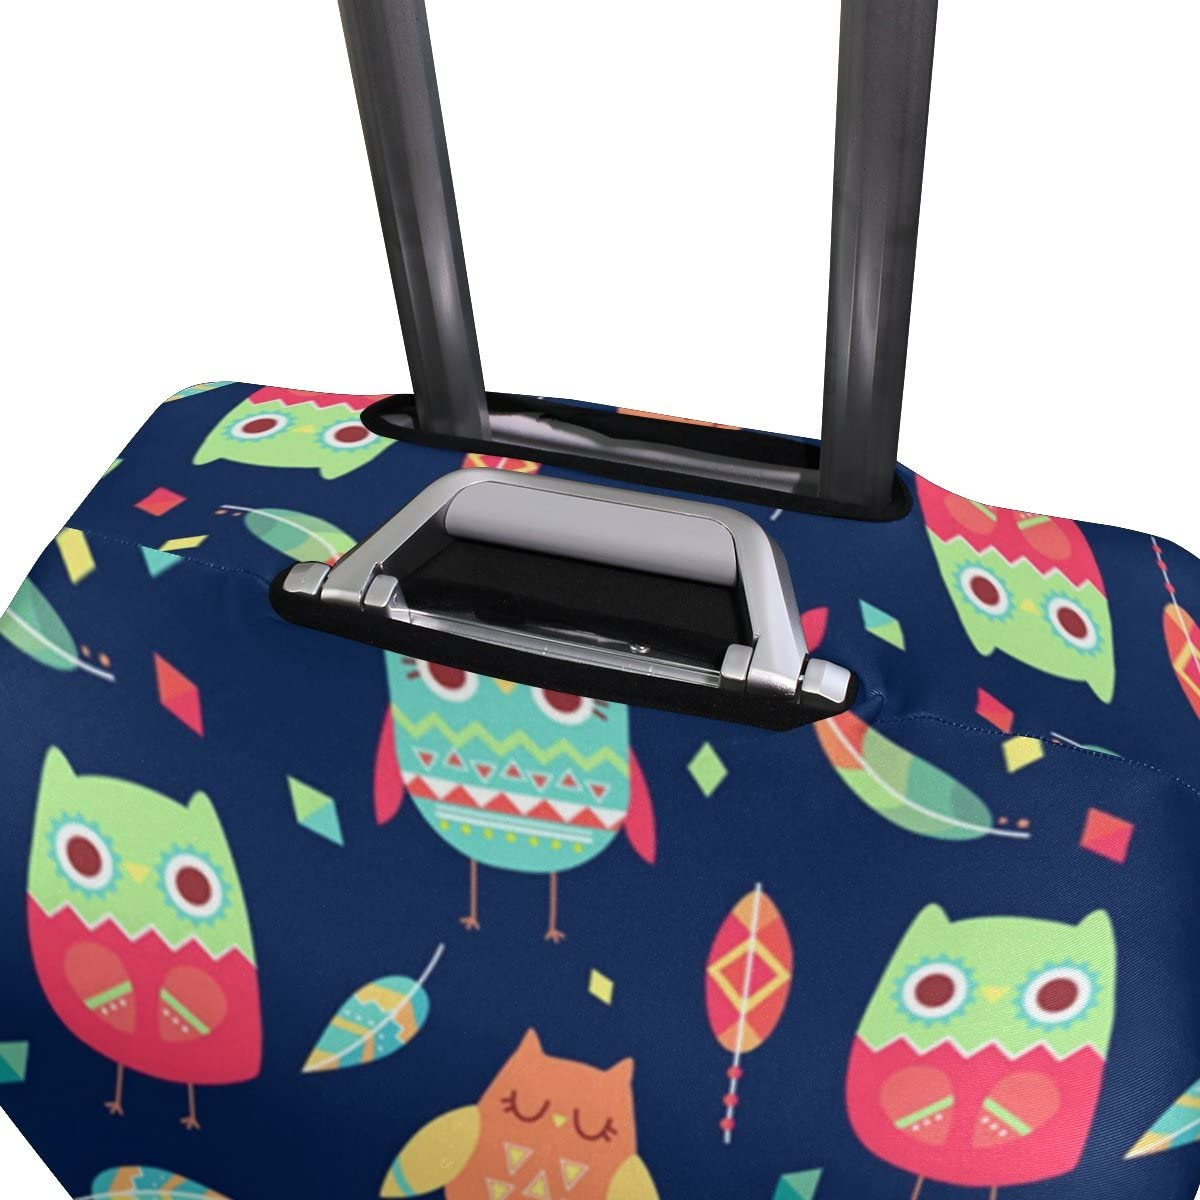 Elastic Travel Luggage Cover Cartoon Owls Suitcase Protector for 18-20 Inch Luggage